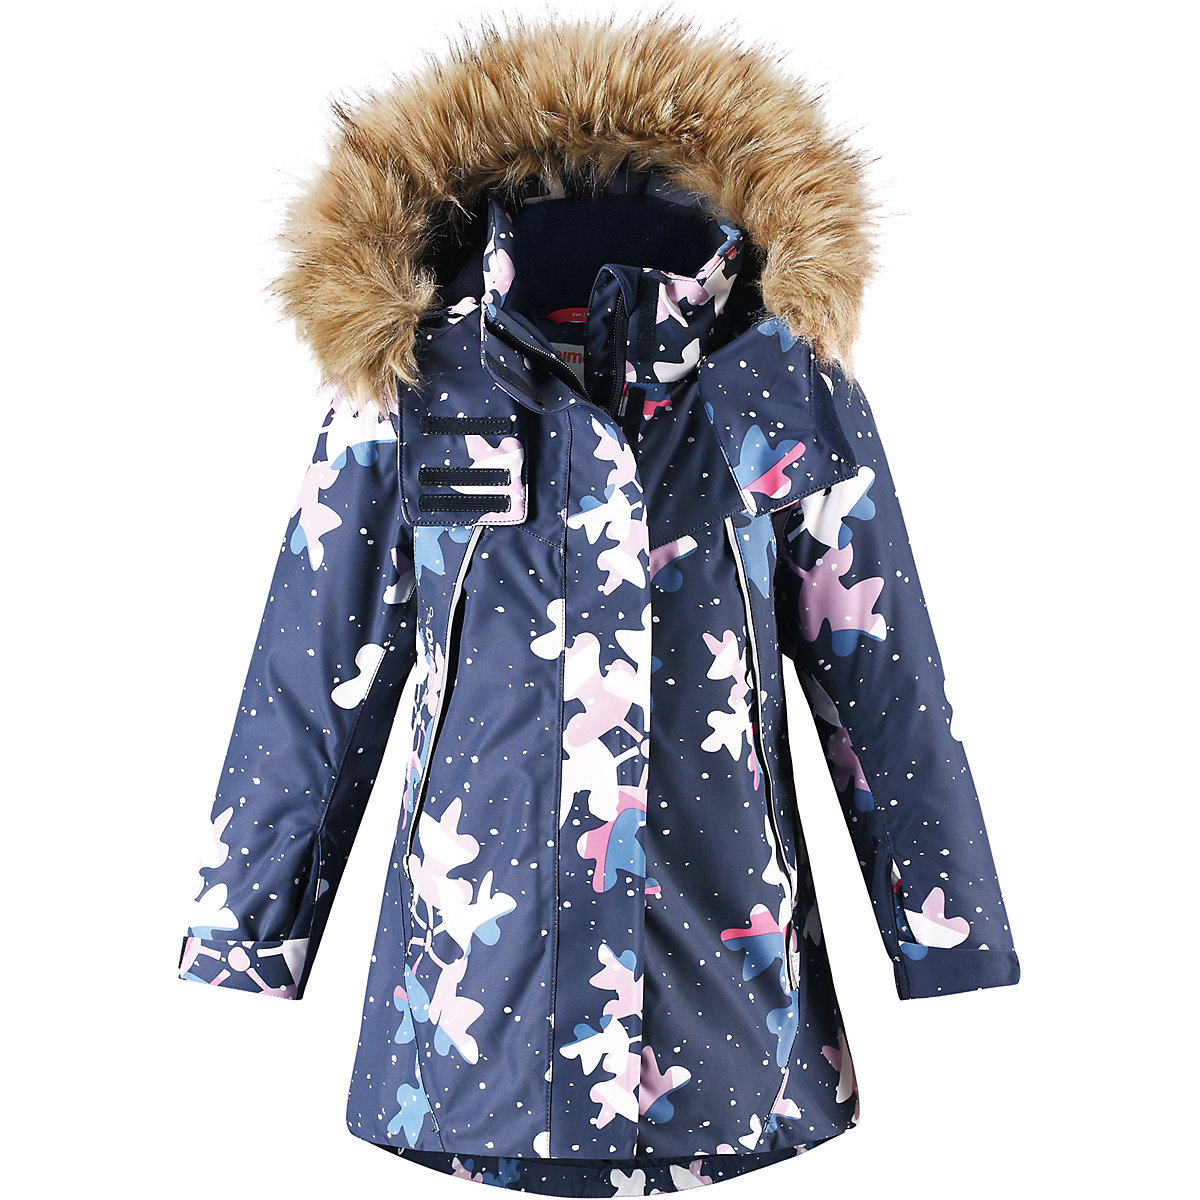 REIMA Jackets 8665394 for girls polyester winter  fur clothes girl vector brand ski jackets men outdoor thermal waterproof snowboard skiing jackets climbing snow winter clothes hxf70002